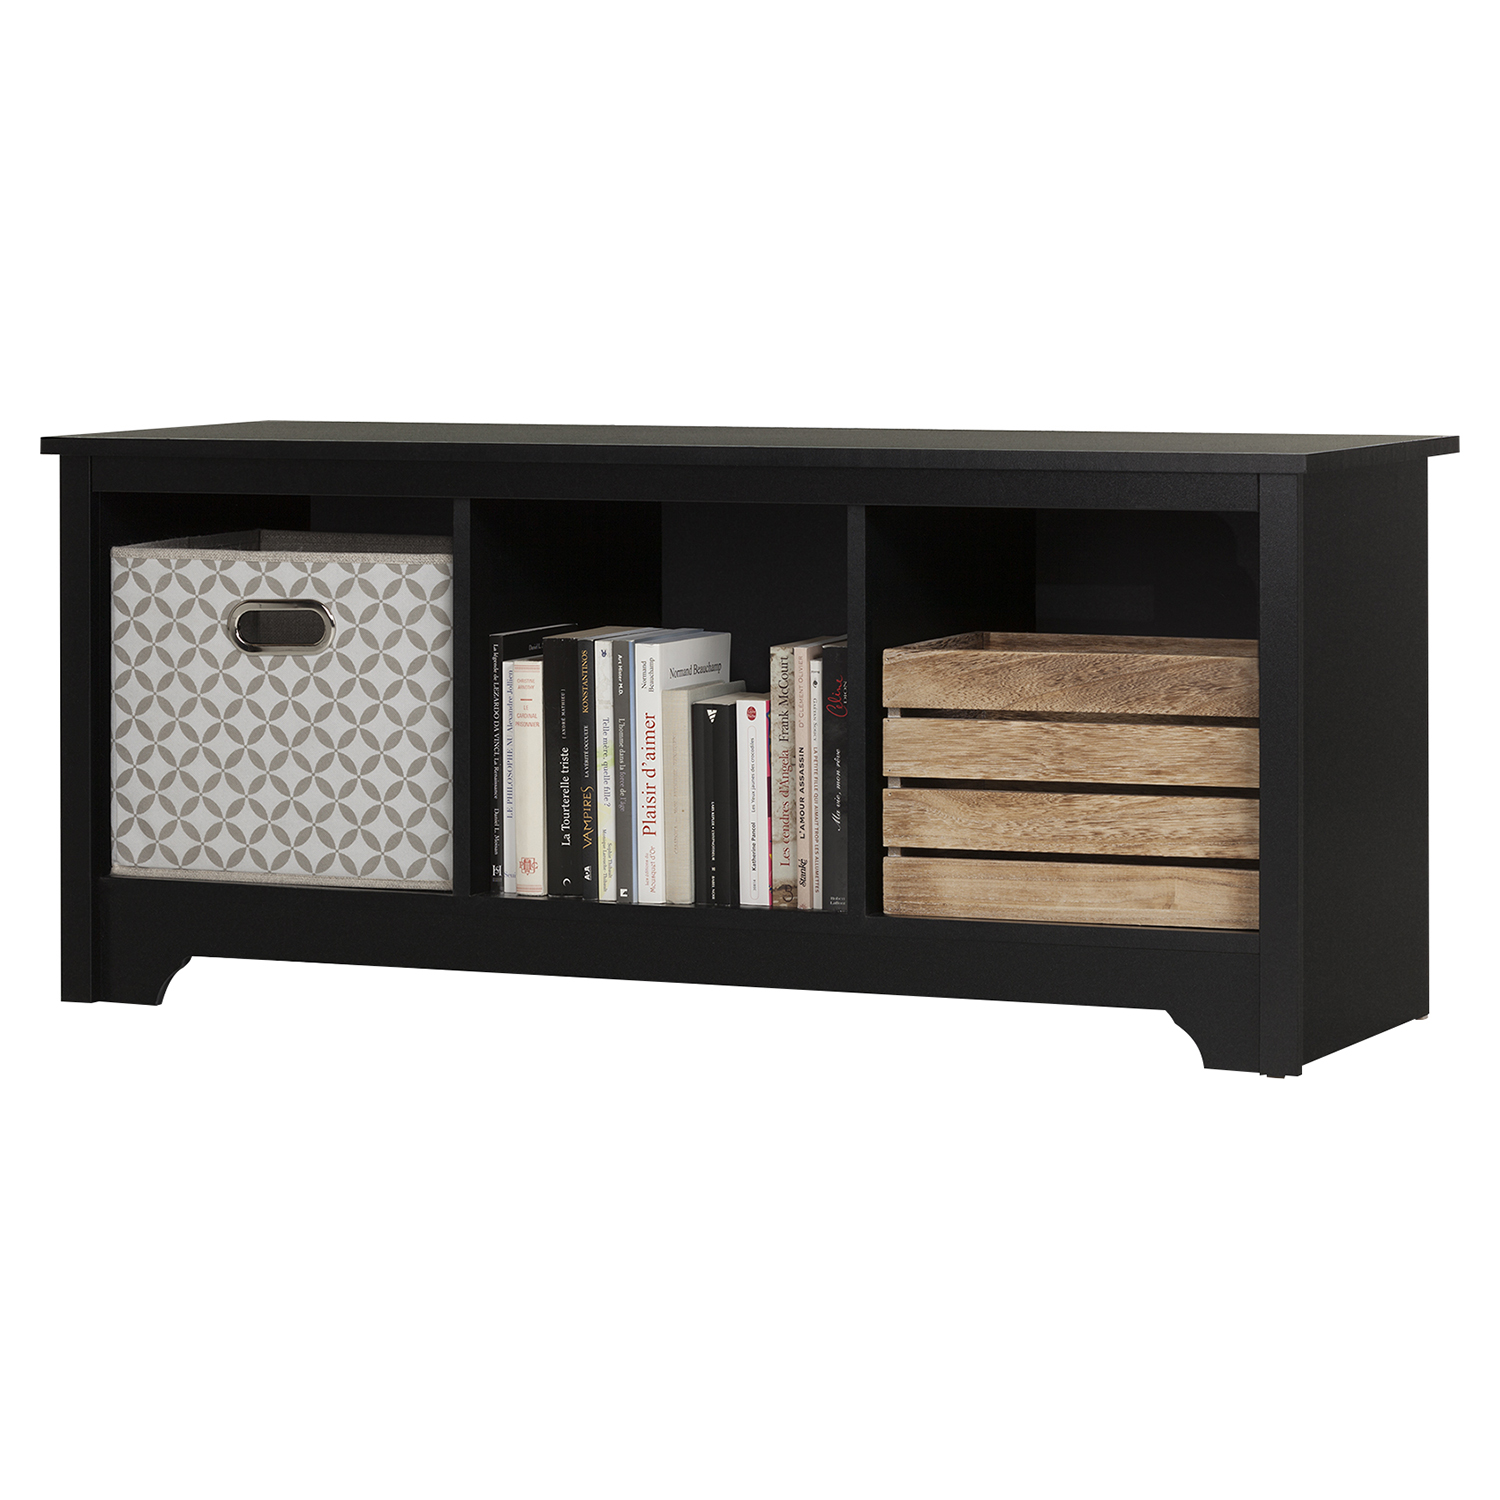 Vito Cubby Storage Bench - Pure Black - SS-10330